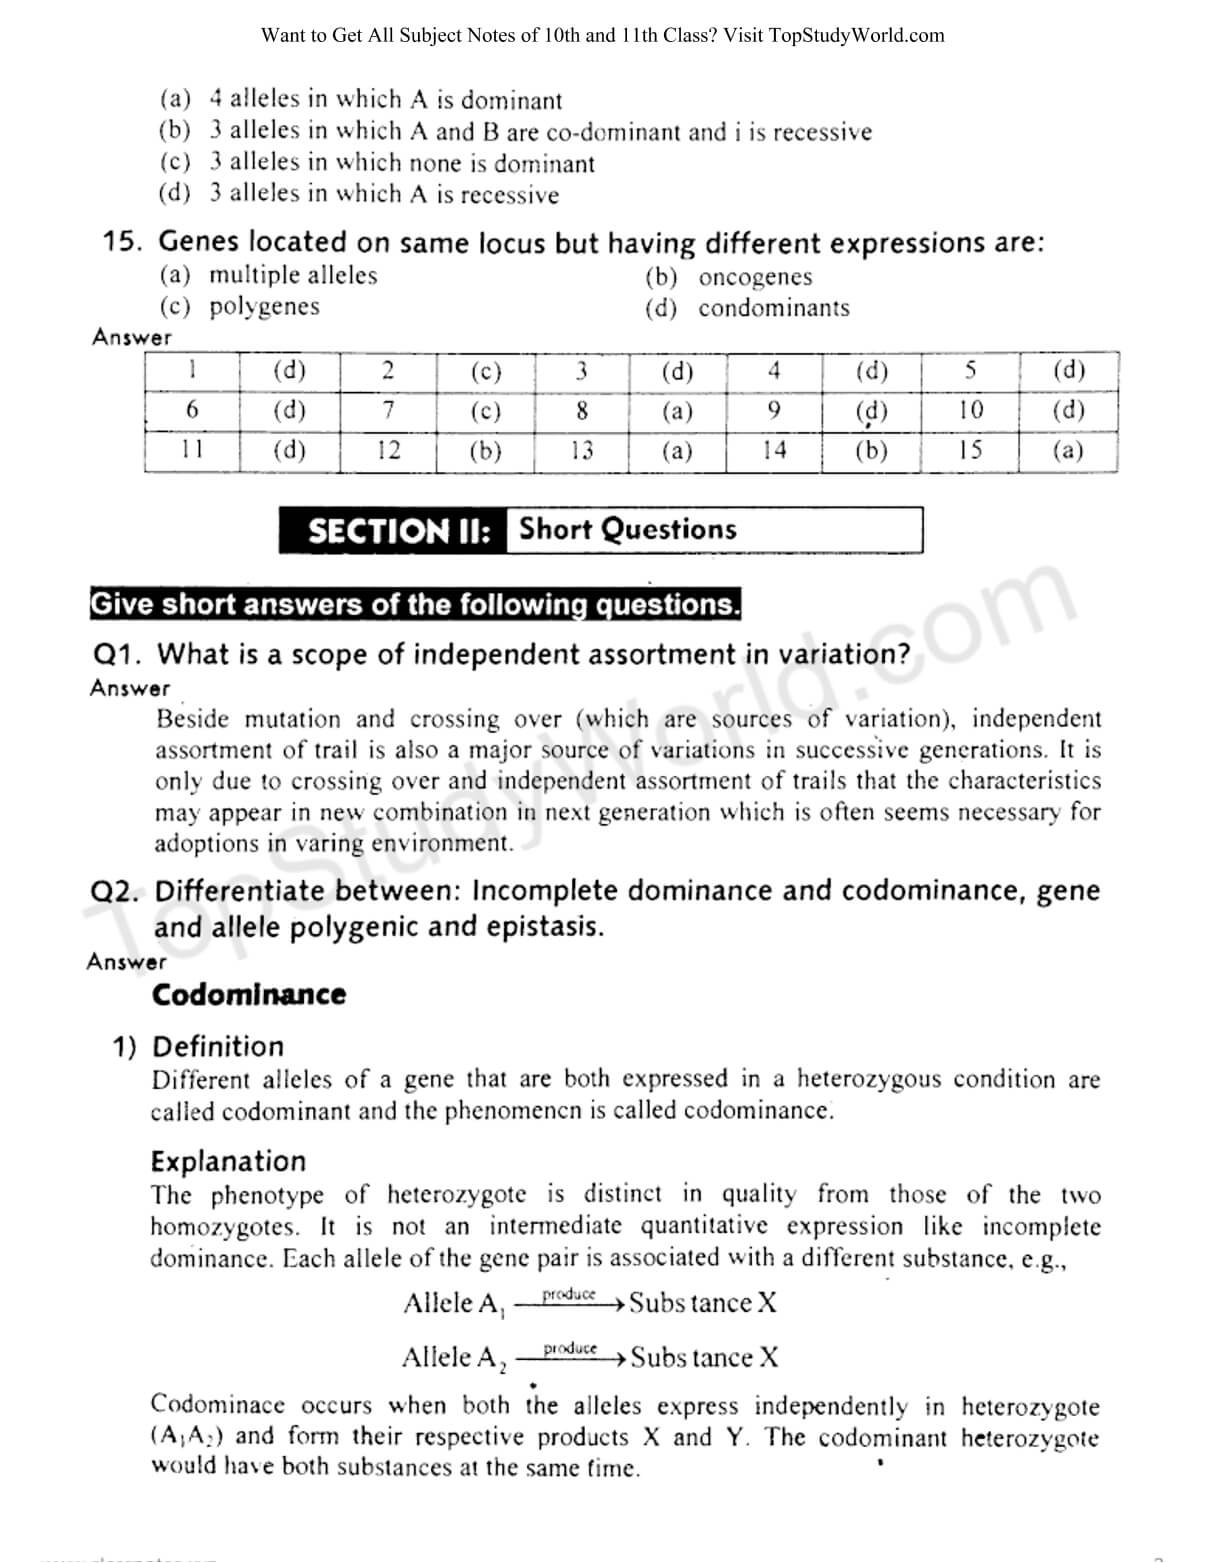 Chapter 22 - Inheritance Notes in PDF [12th Class] | Top